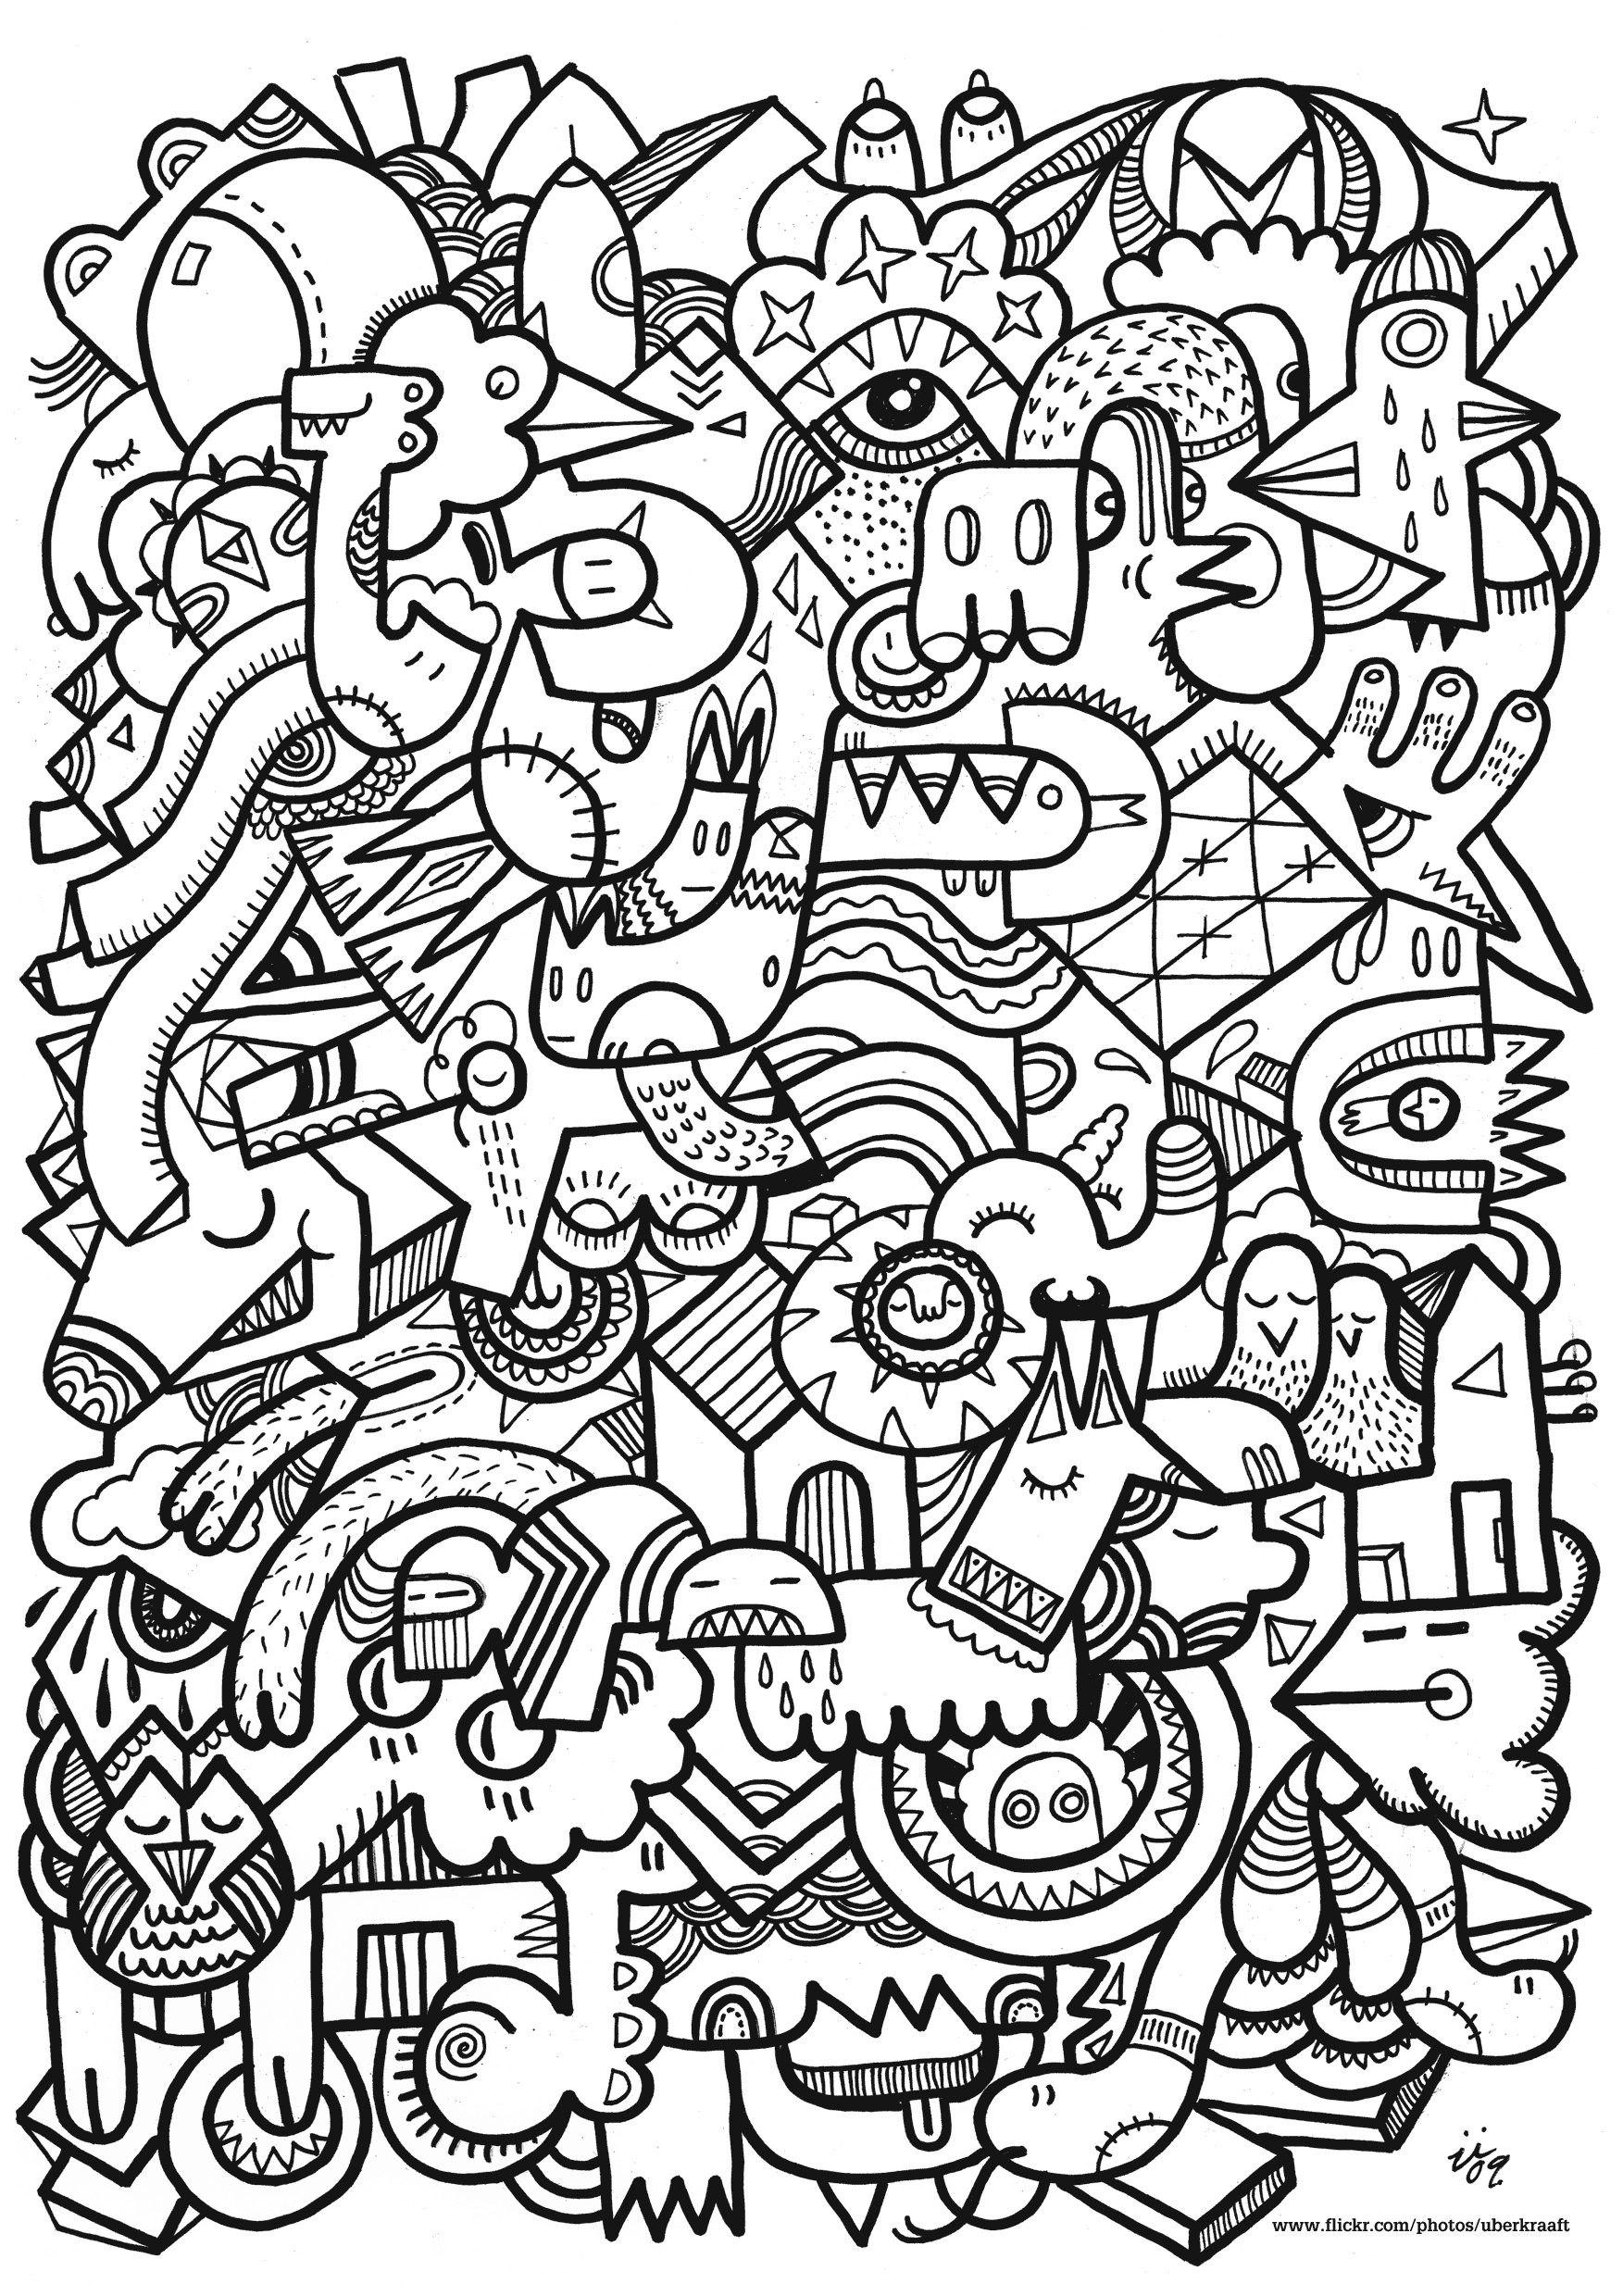 Abstract Design Coloring Pages Patterns Difficult Colouring Pages Printable Of Stress Relief Coloring Pages Animals Funny Coloring Pages Printable